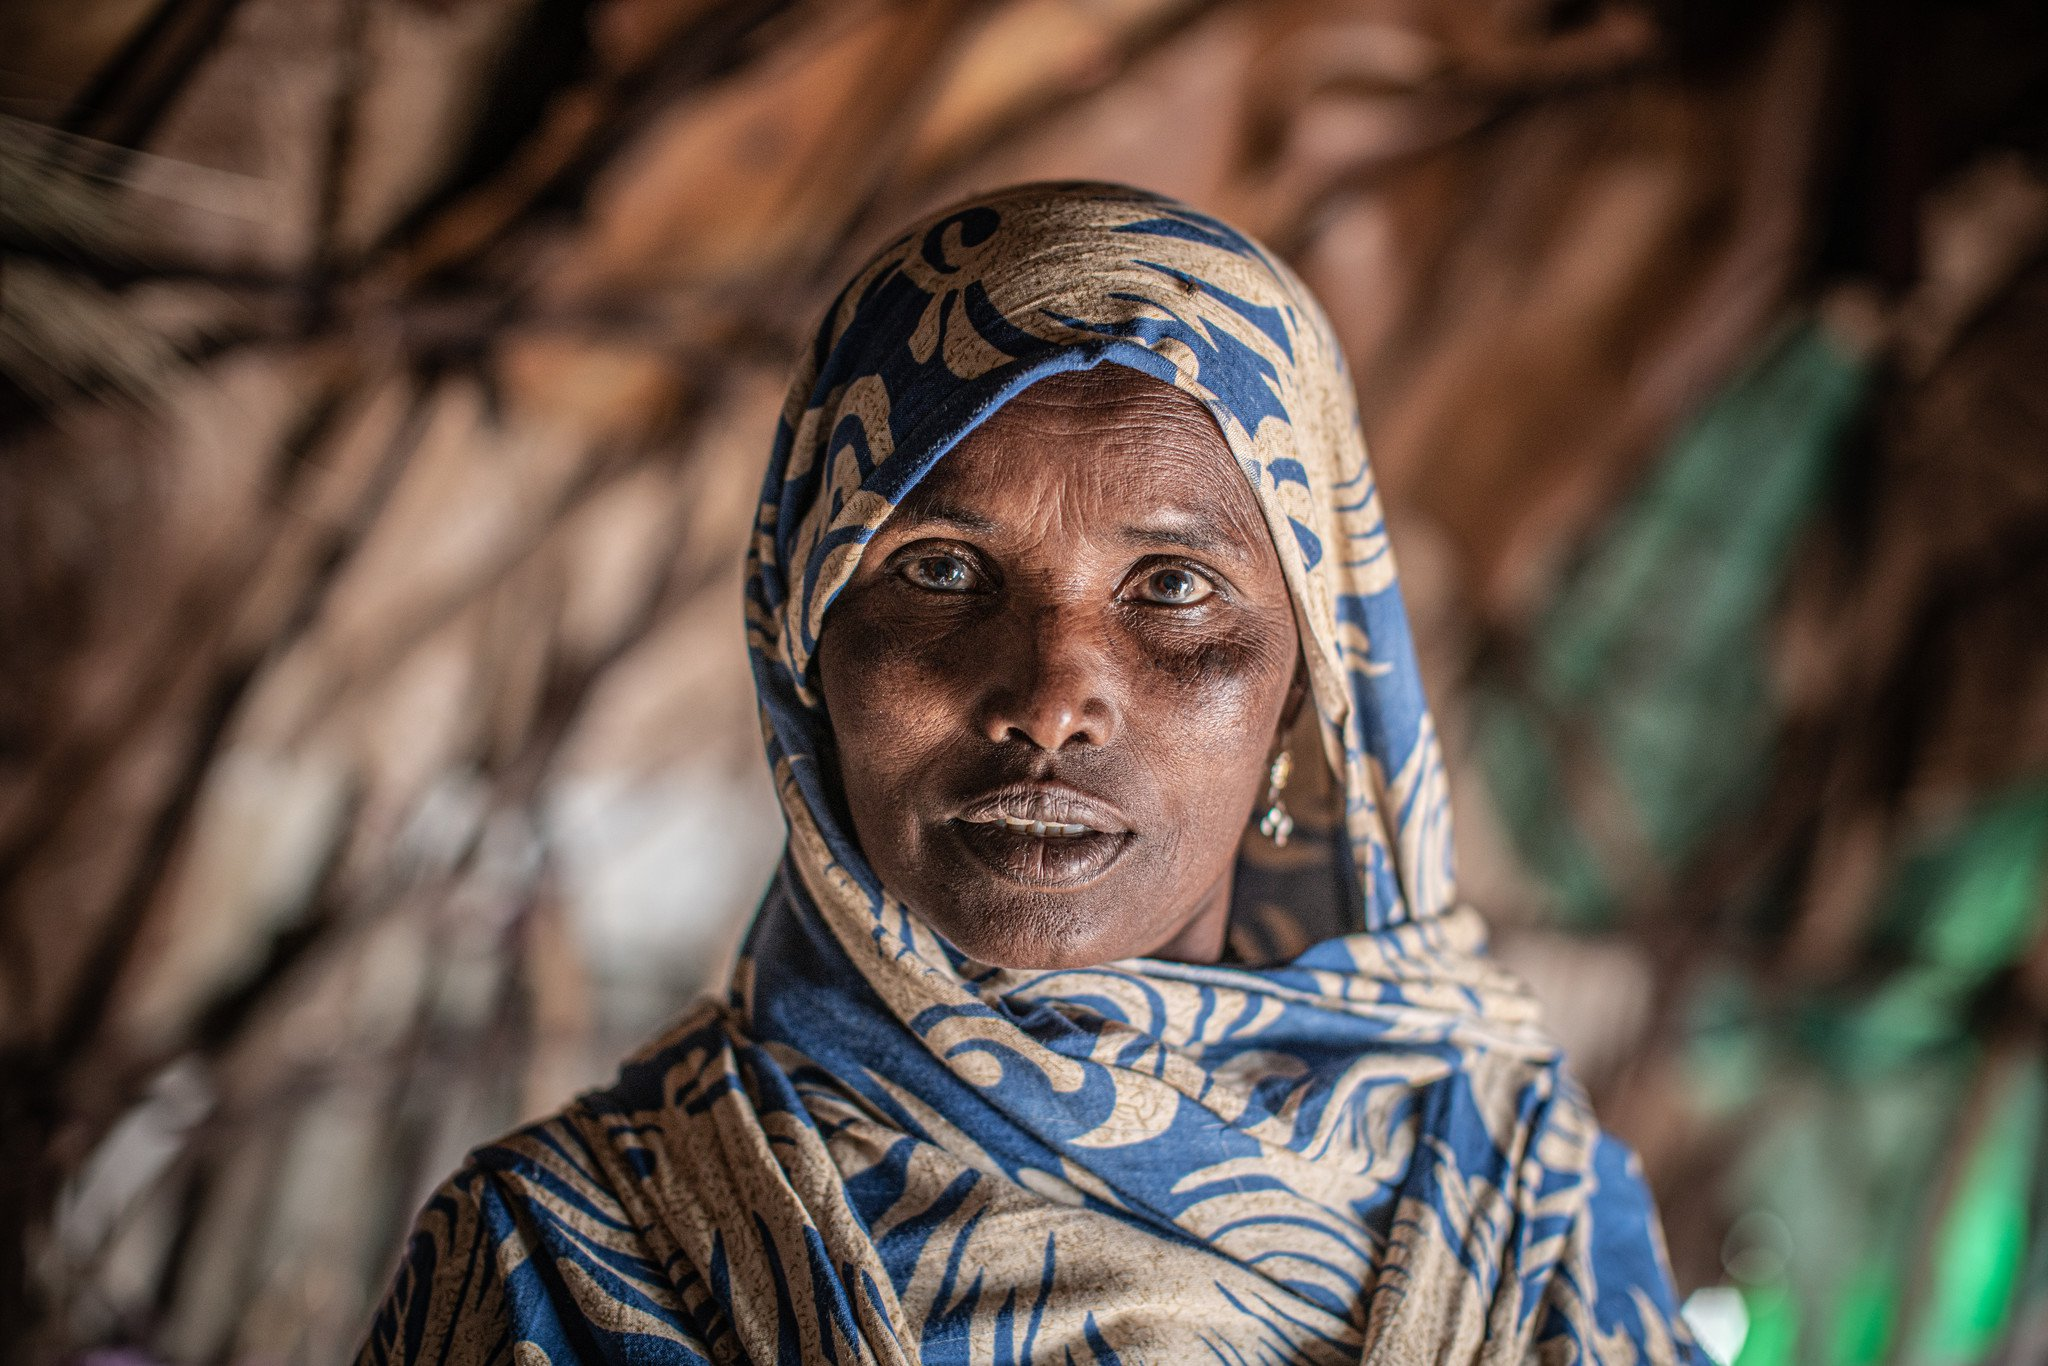 """Shamis Alel: """"Lack of water and food, and problems with changing climate, make women the most vulnerable."""""""